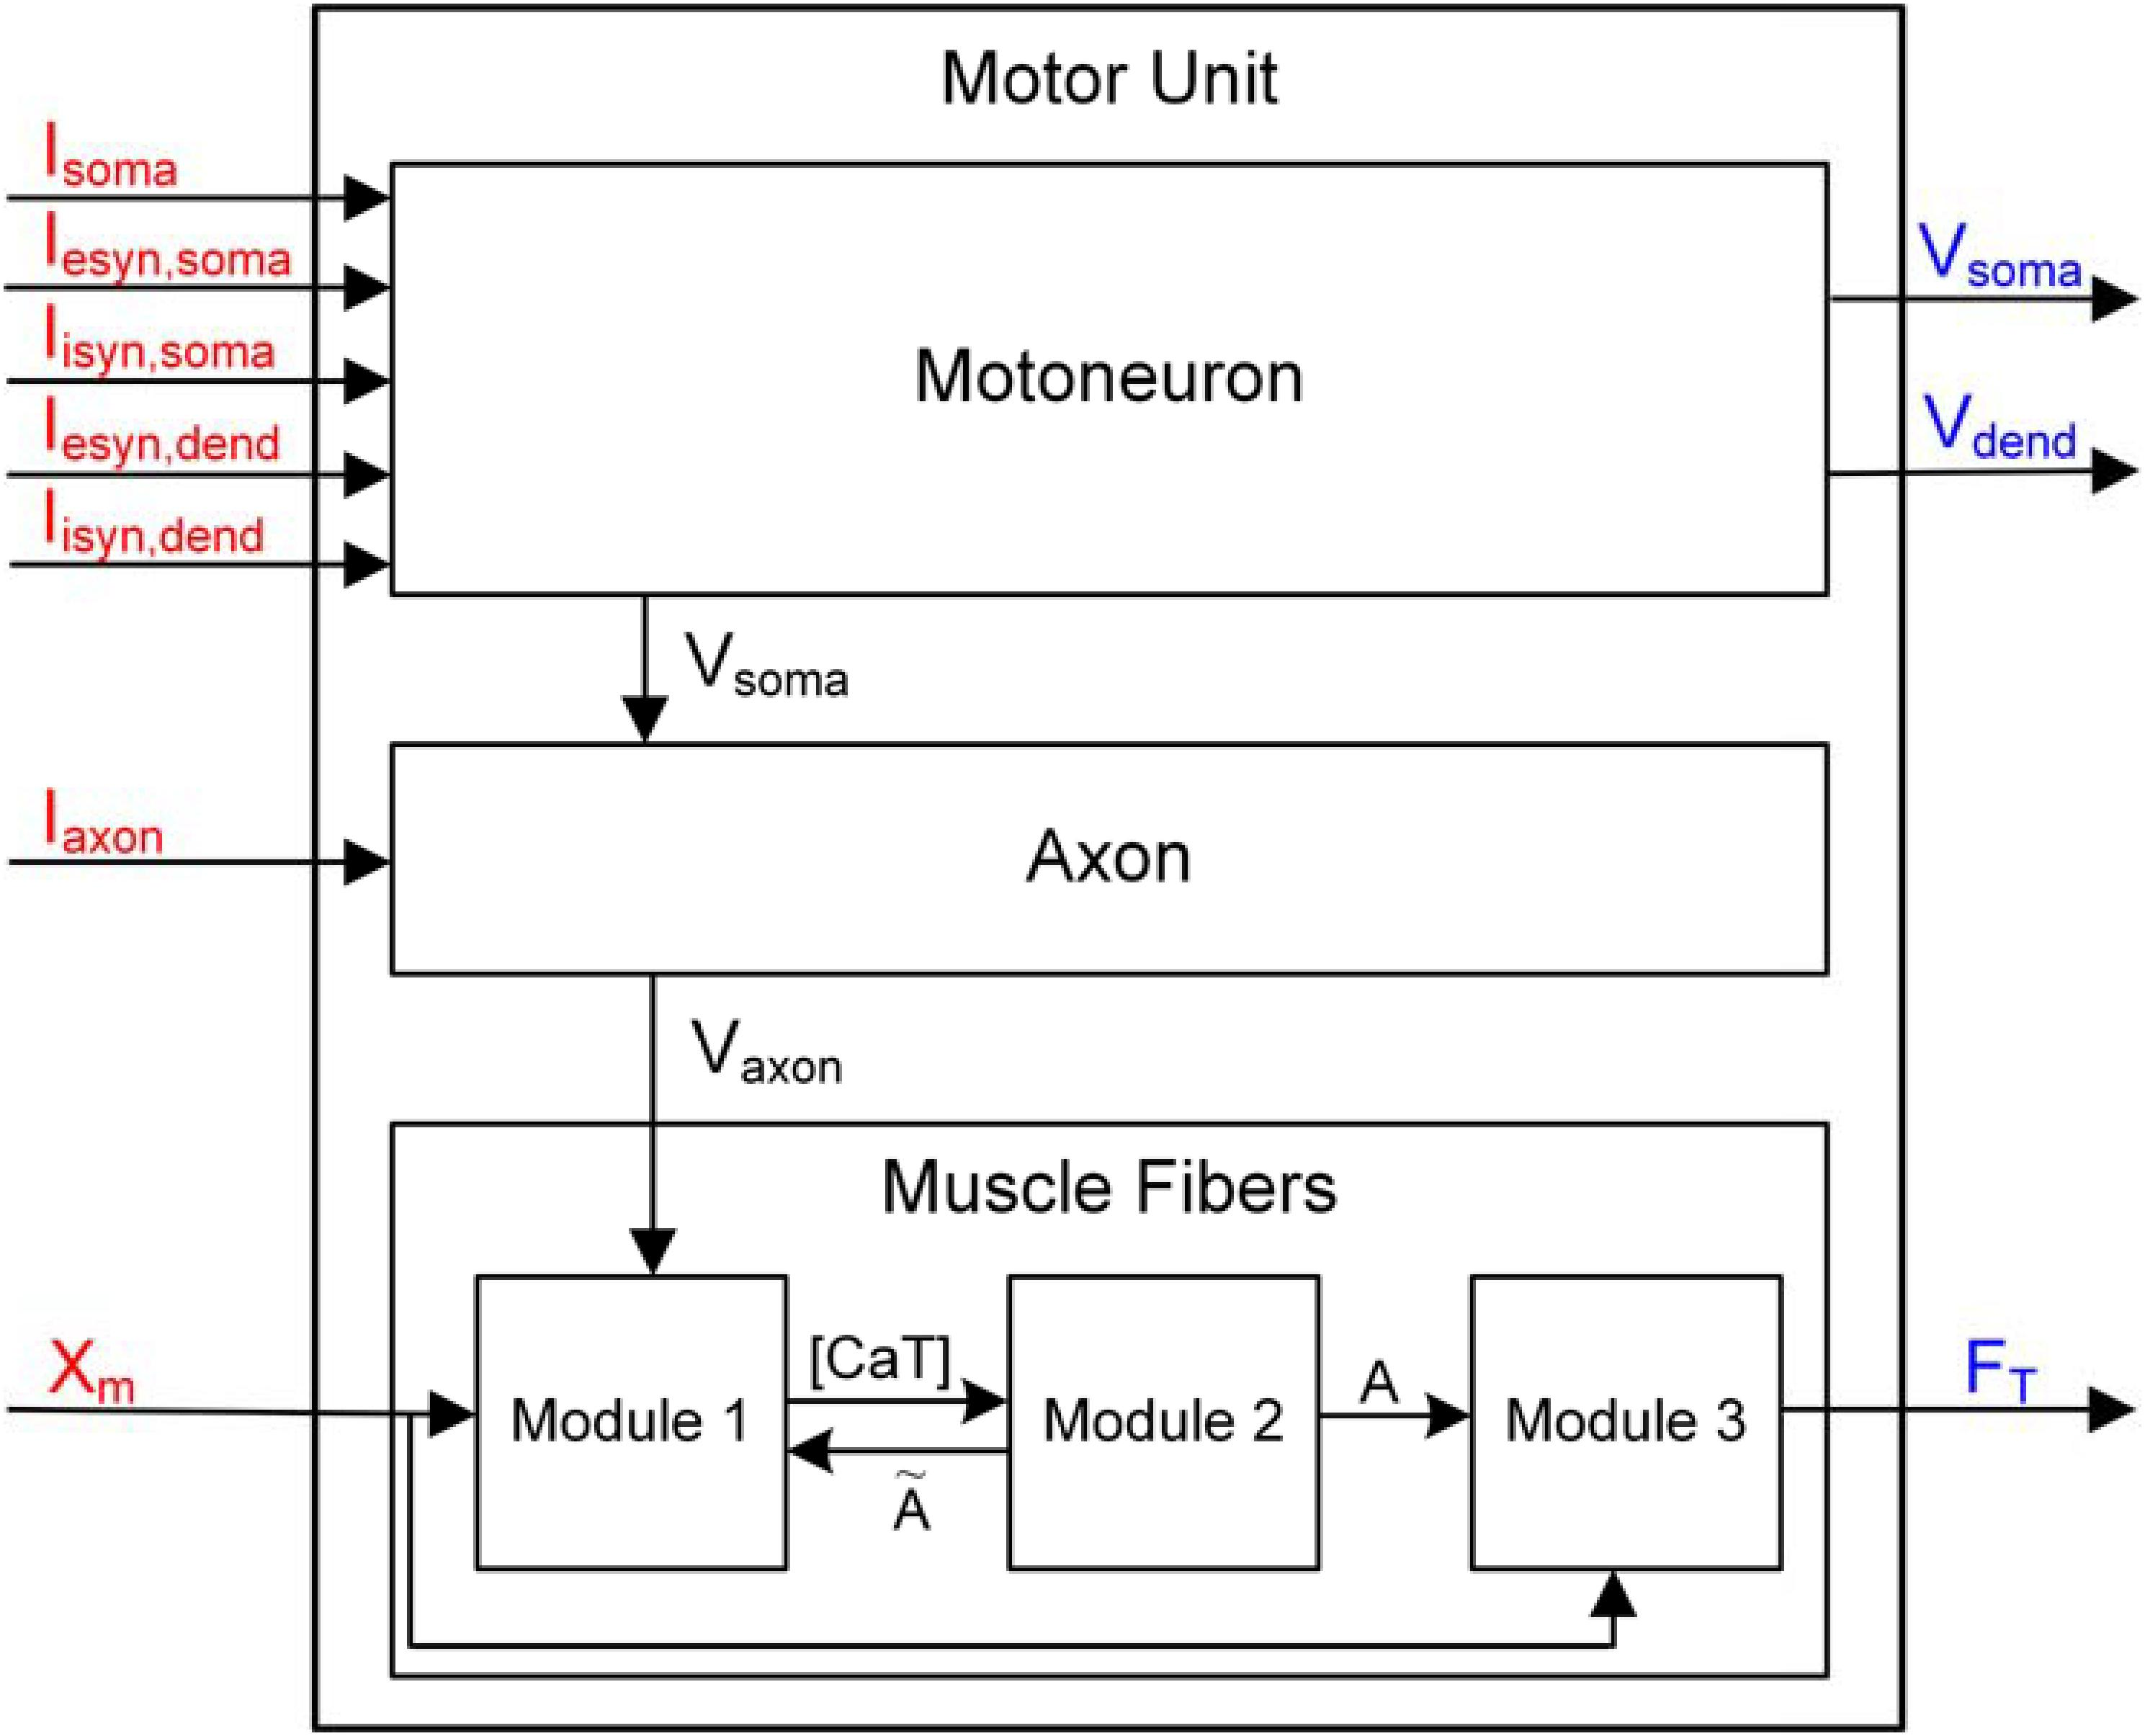 Frontiers | PyMUS: Python-Based Simulation Software for Virtual ...